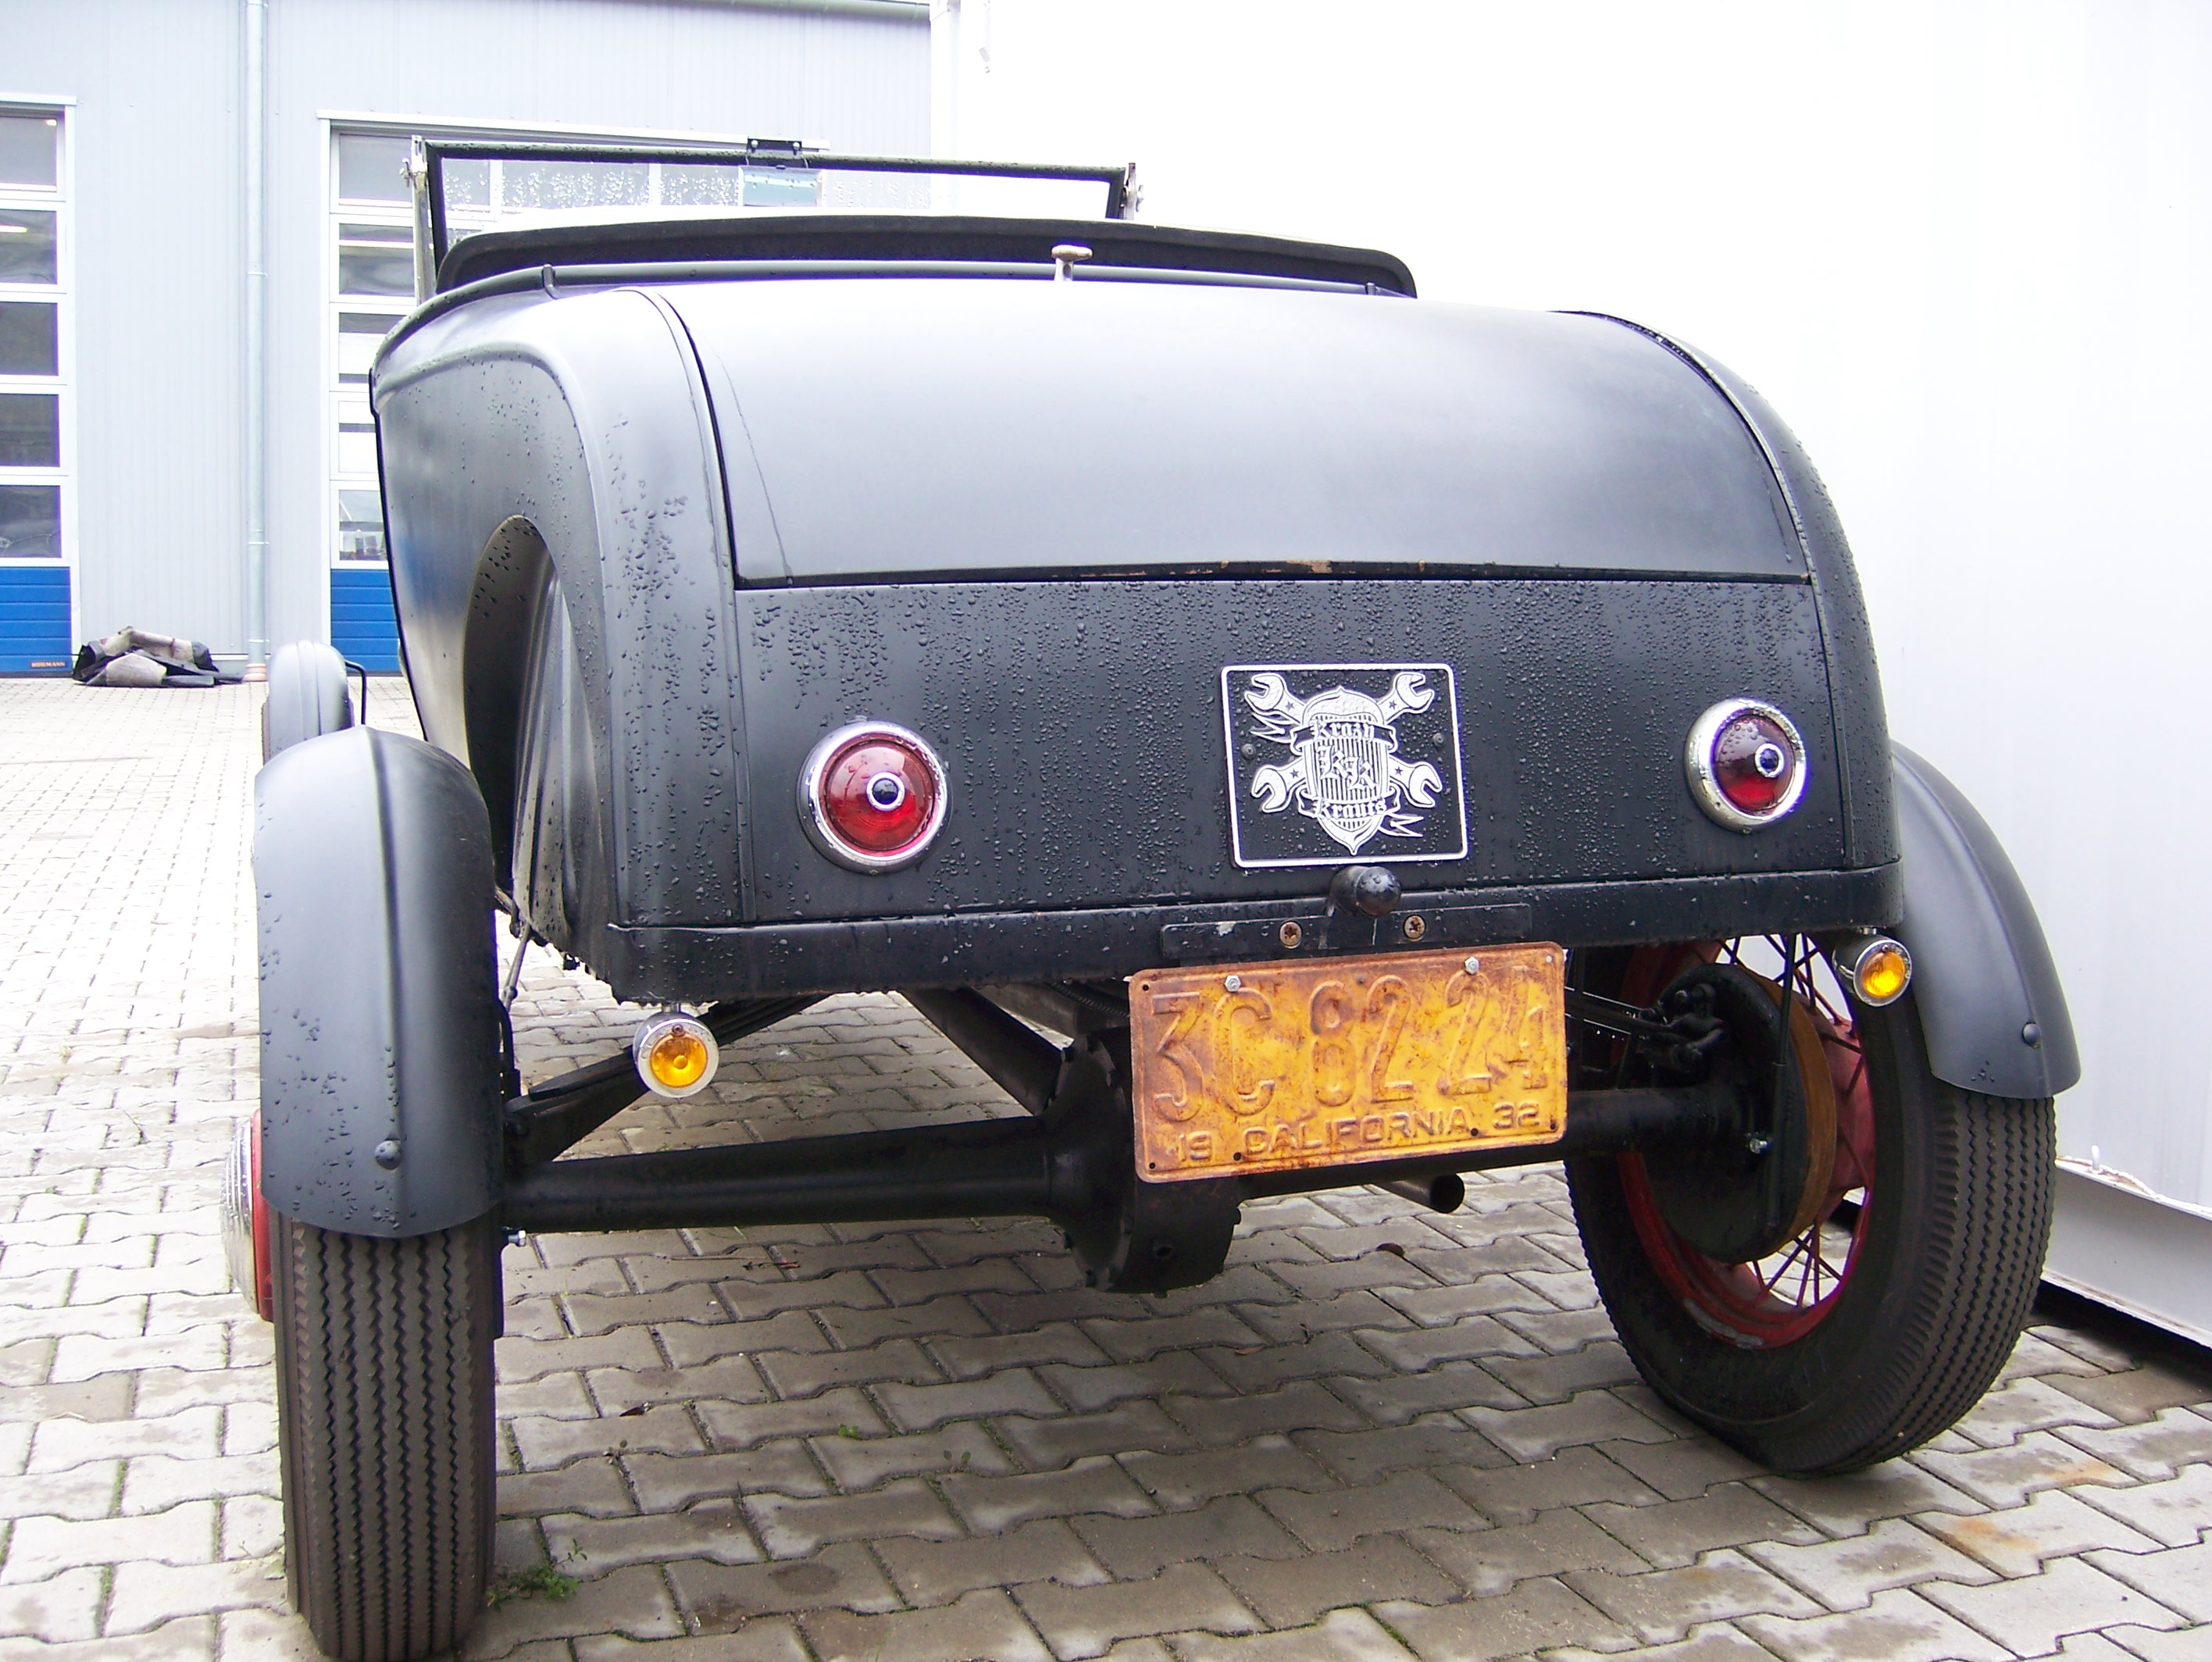 1932 Cadillac further Flame Clip Art For Cars moreover N0ZQX in addition 1928 ford roadster likewise Vw Phaeton Grizzly. on projects of cars